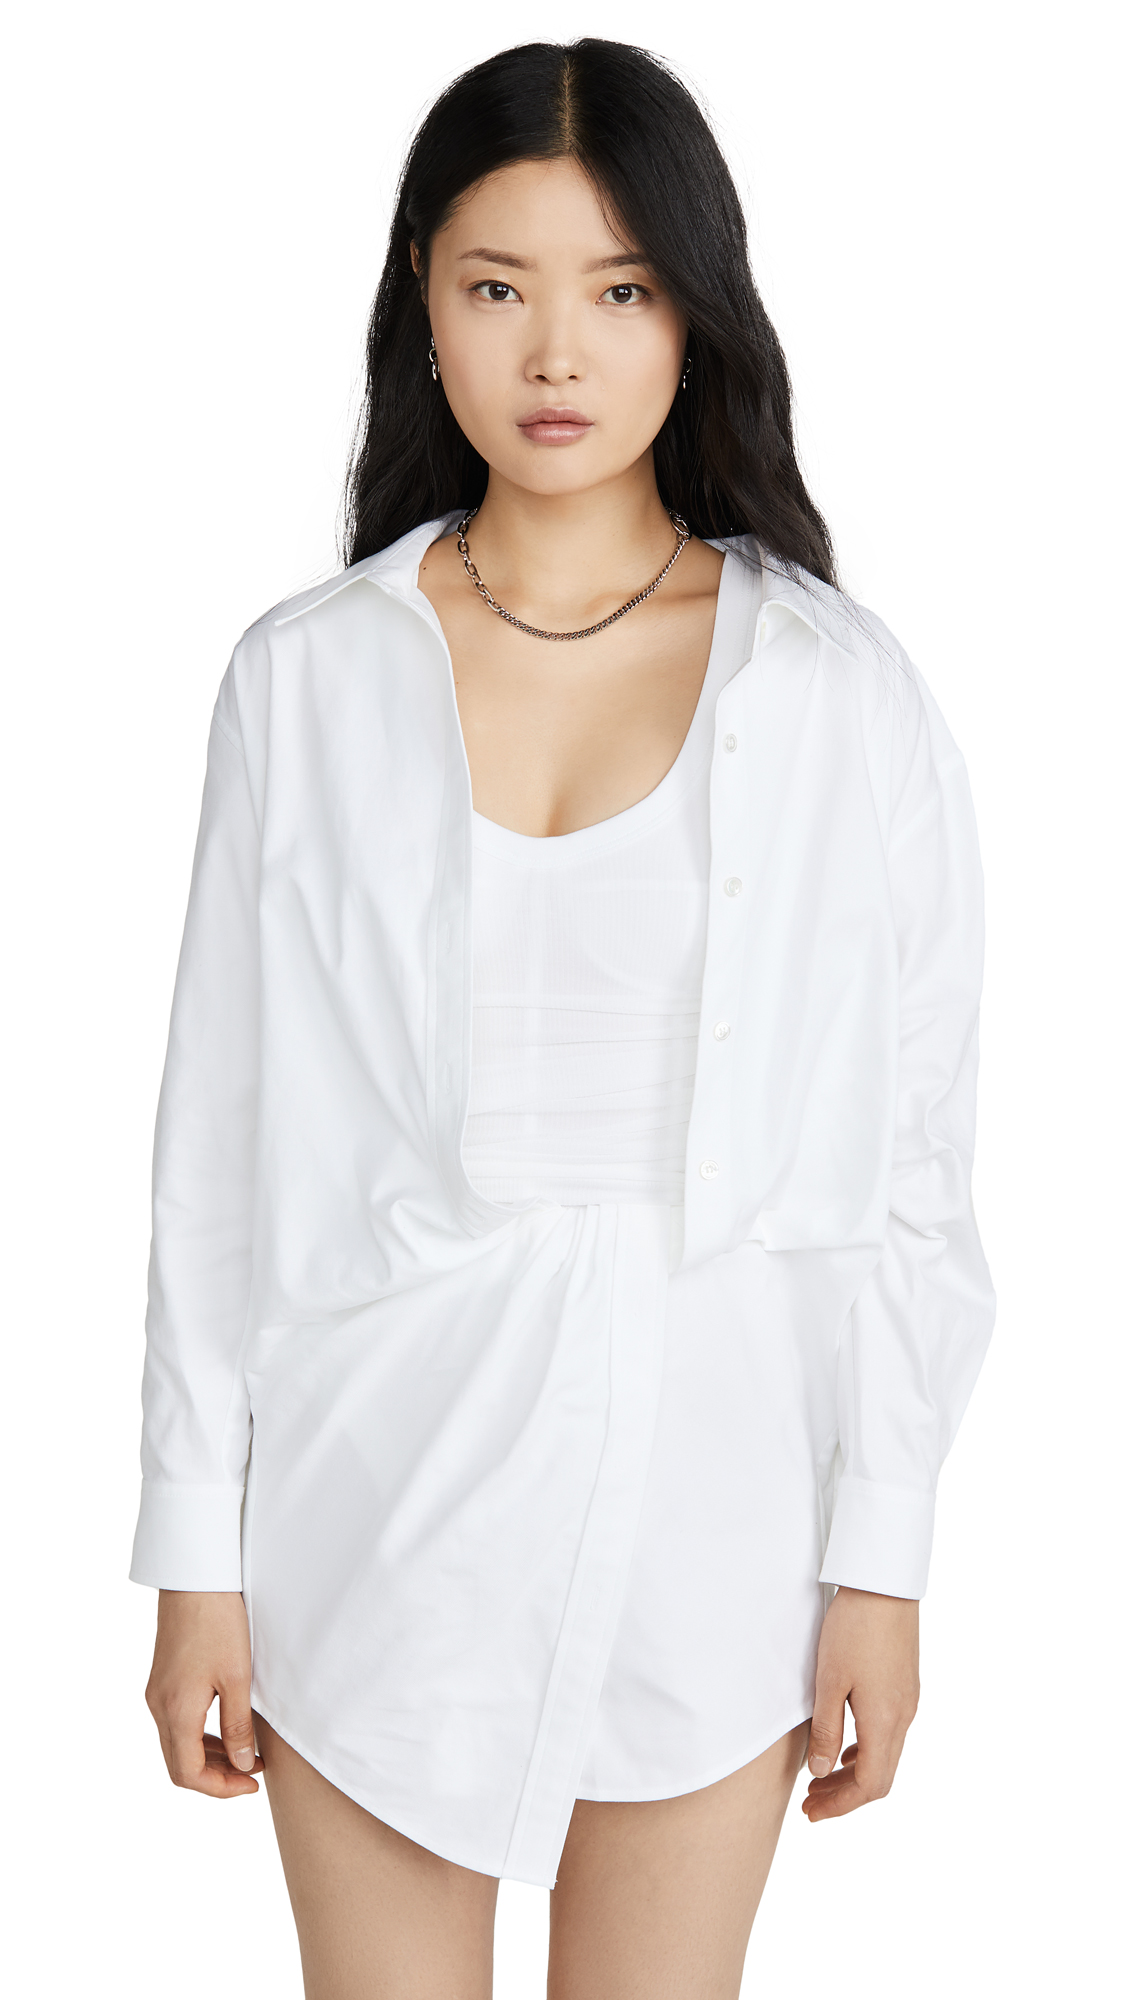 Alexander Wang Falling Twist Shirt Dress - 40% Off Sale